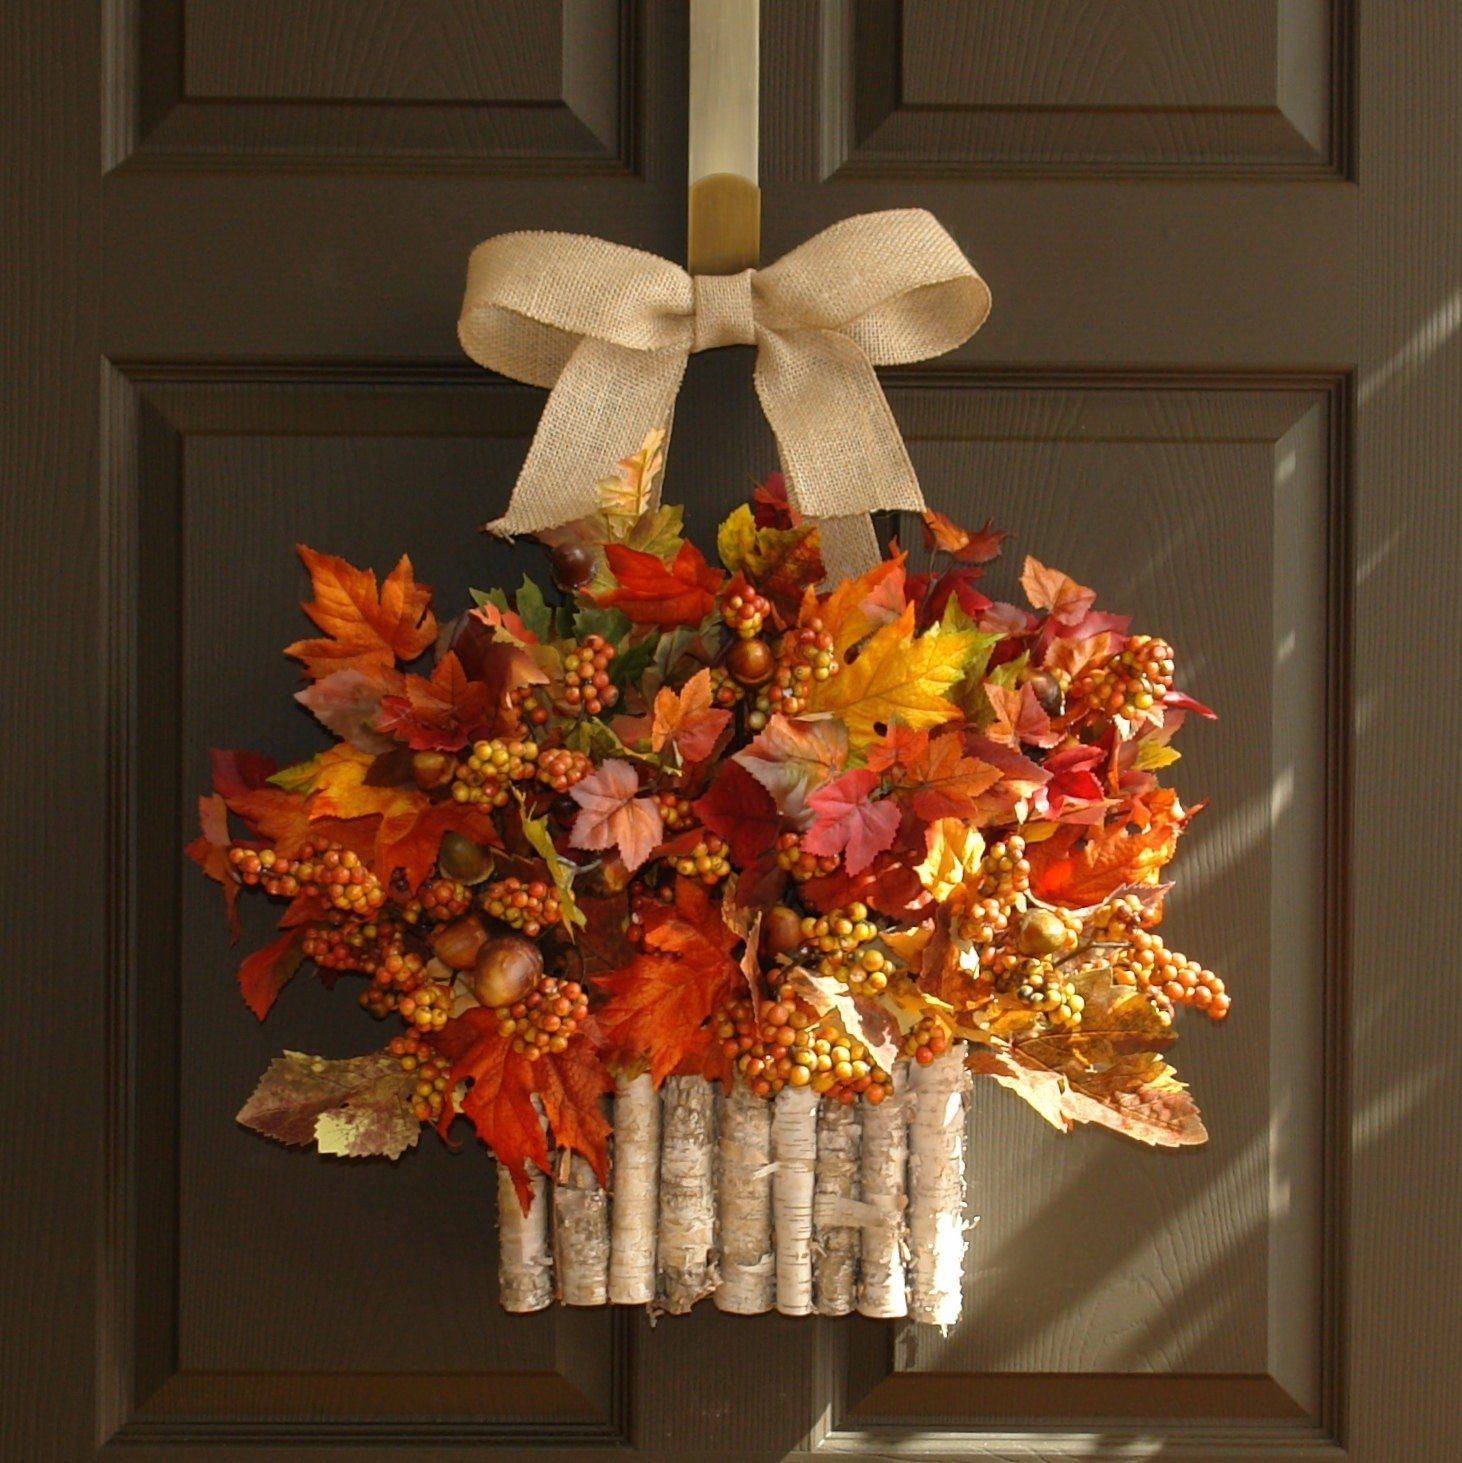 10 Stunning Fall Wreath Ideas Front Door decorating autumn wreaths for wonderful wall and door decor ideas 2020